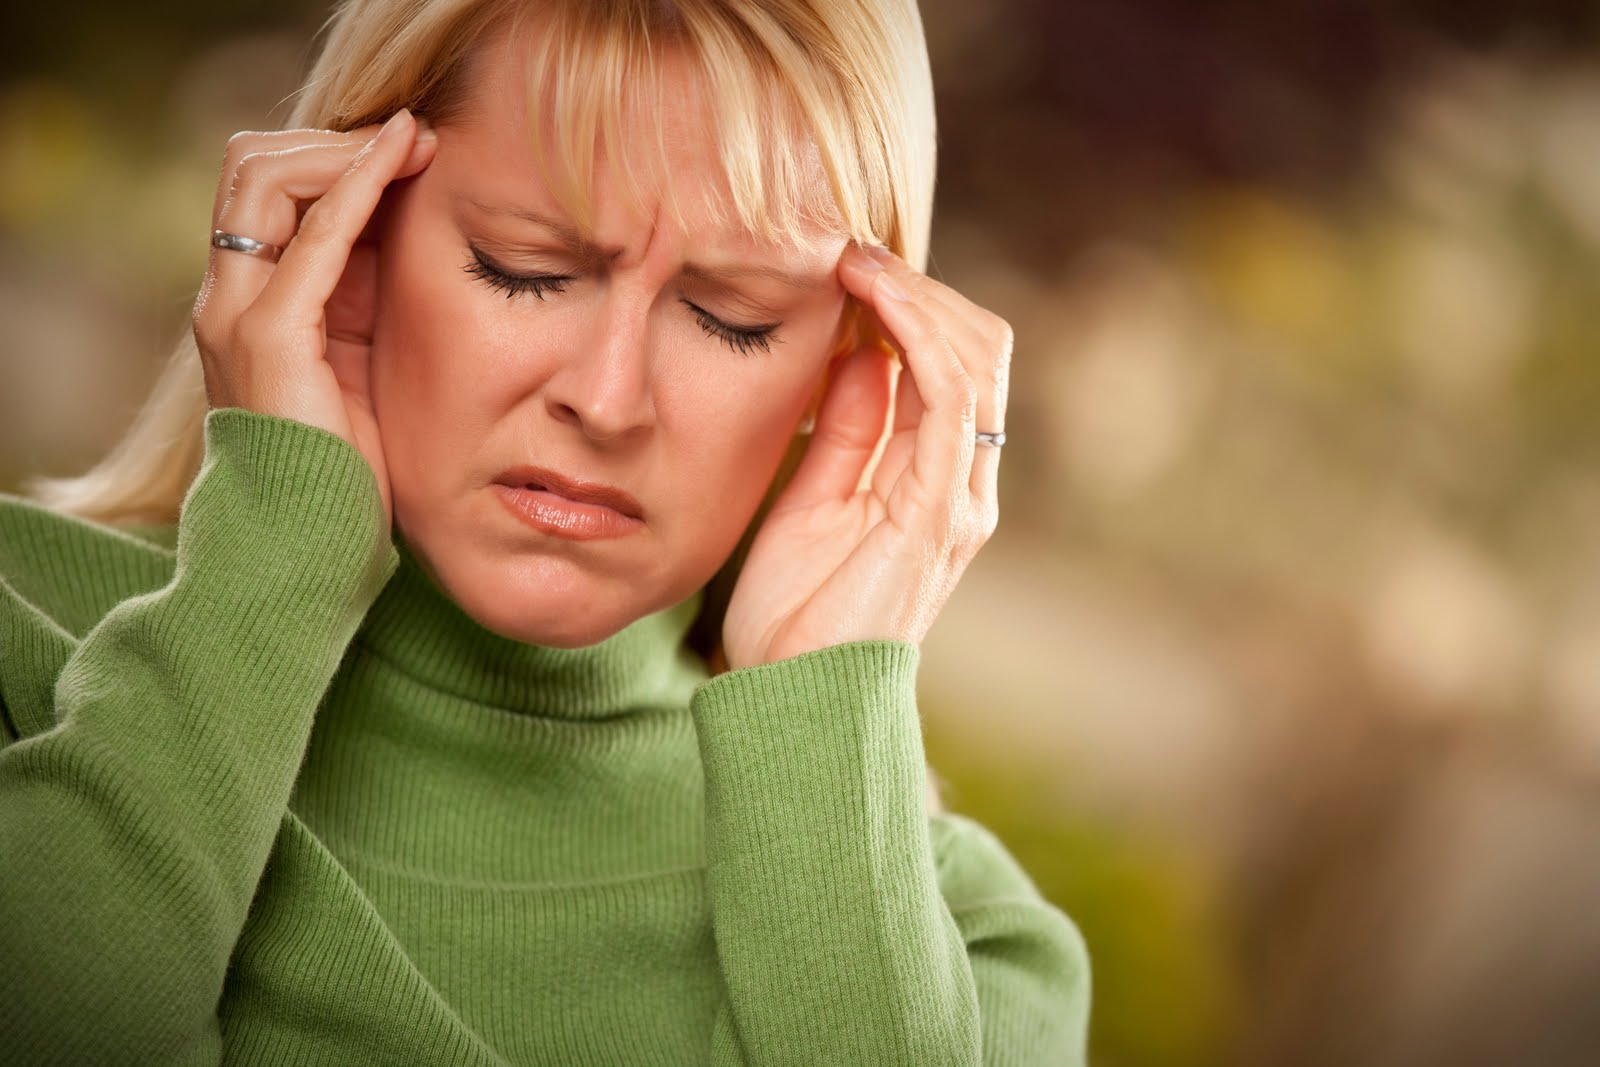 Massage Therapy for headaches in Toronto